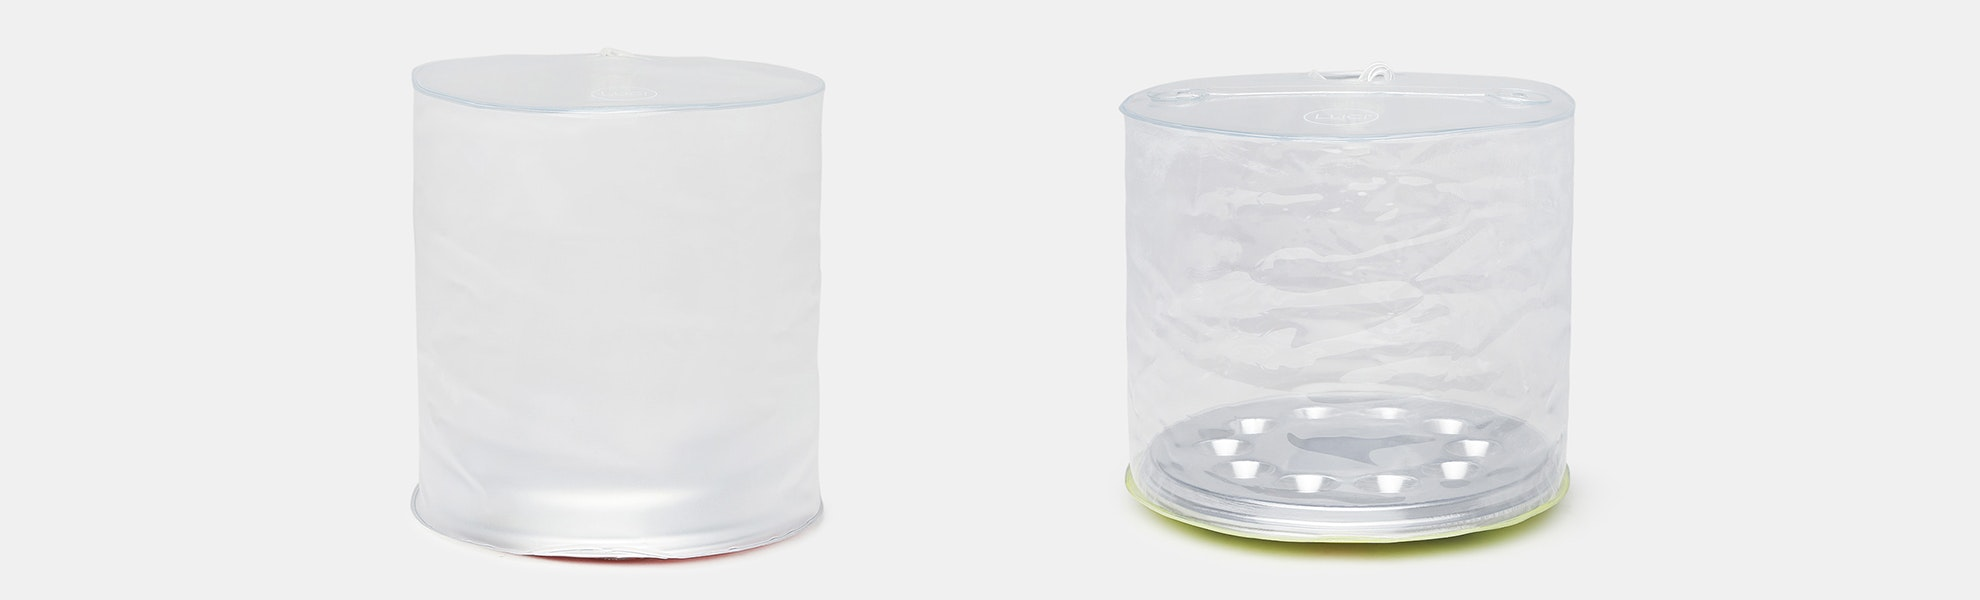 Luci Assorted Inflatable Solar Lights (2-Pack)